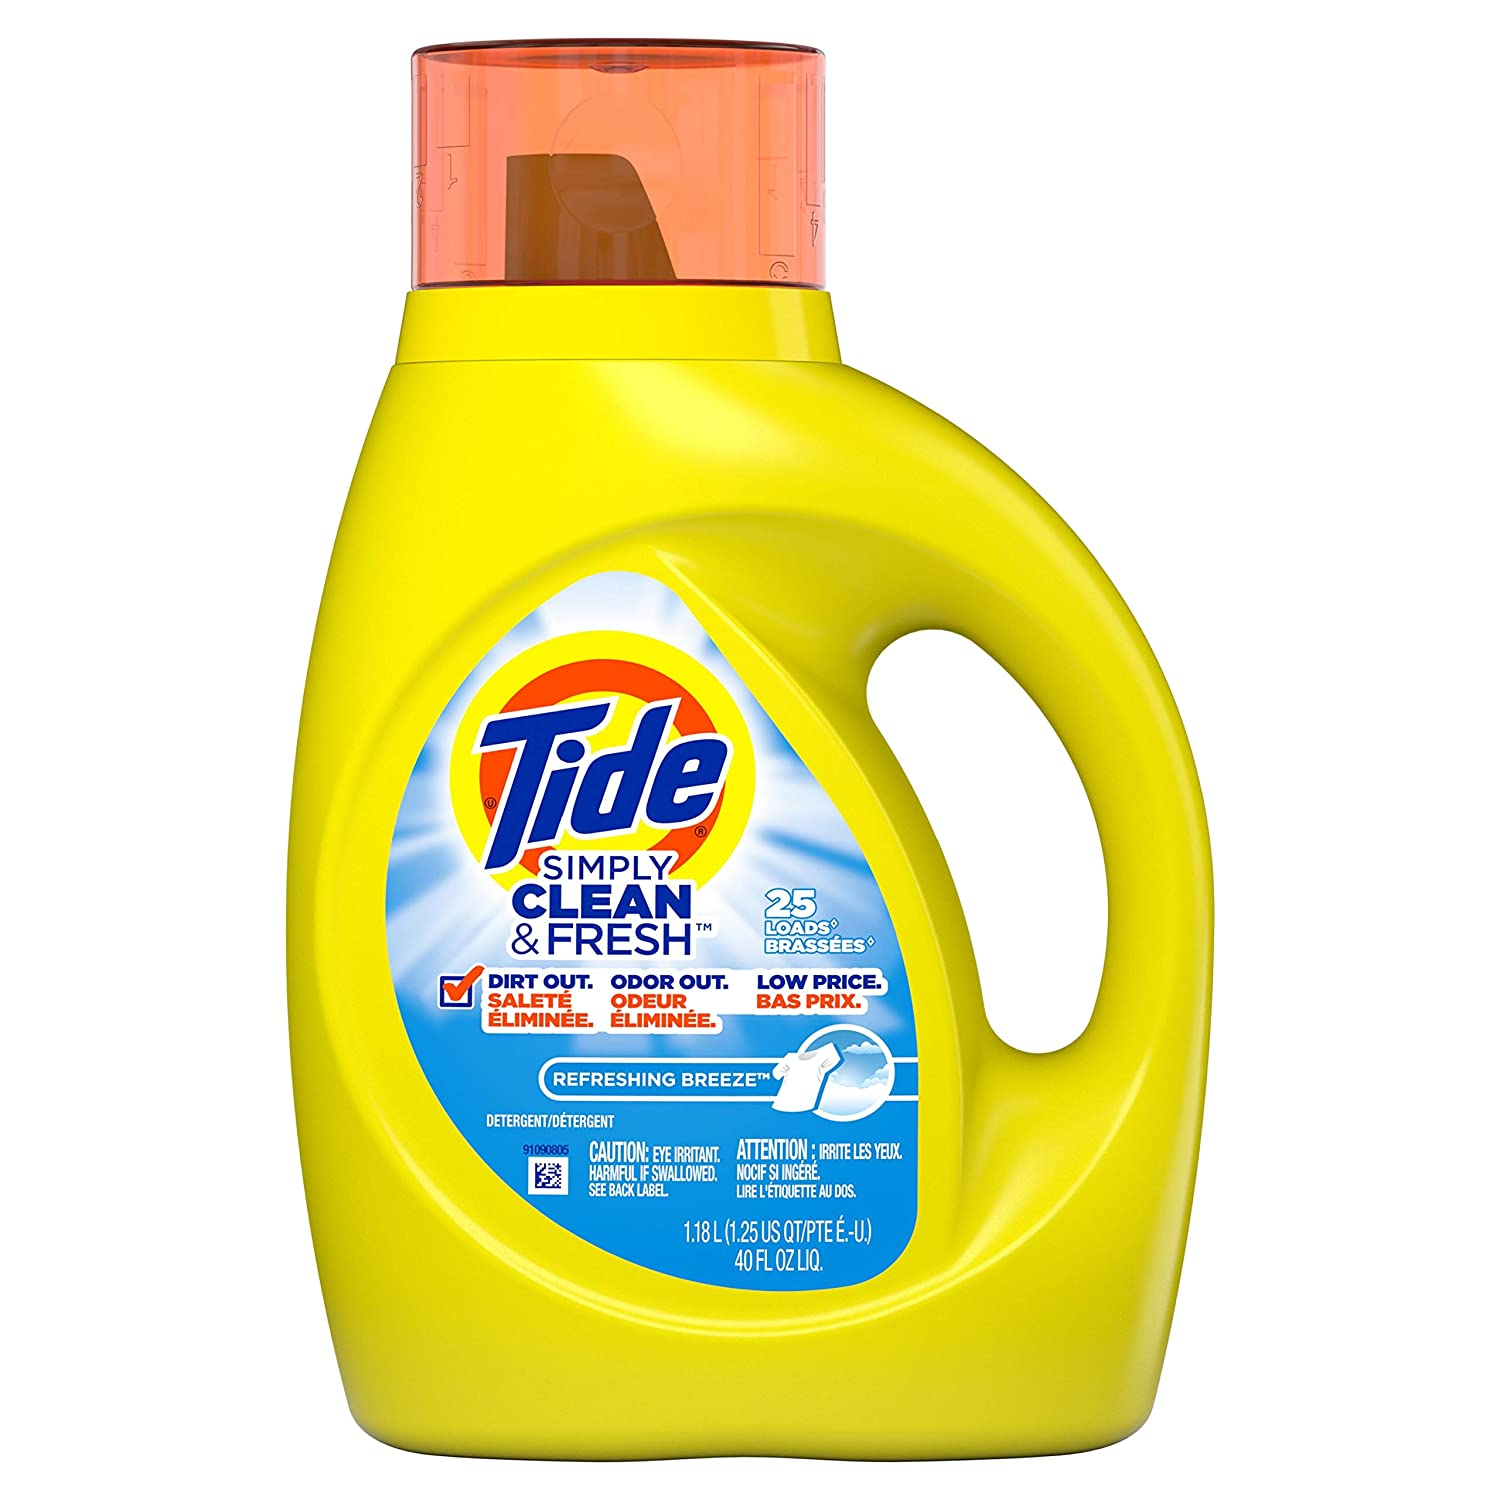 Tide Simply Clean & Fresh Liquid Laundry Detergent, Refreshing Breeze, 40  Ounce